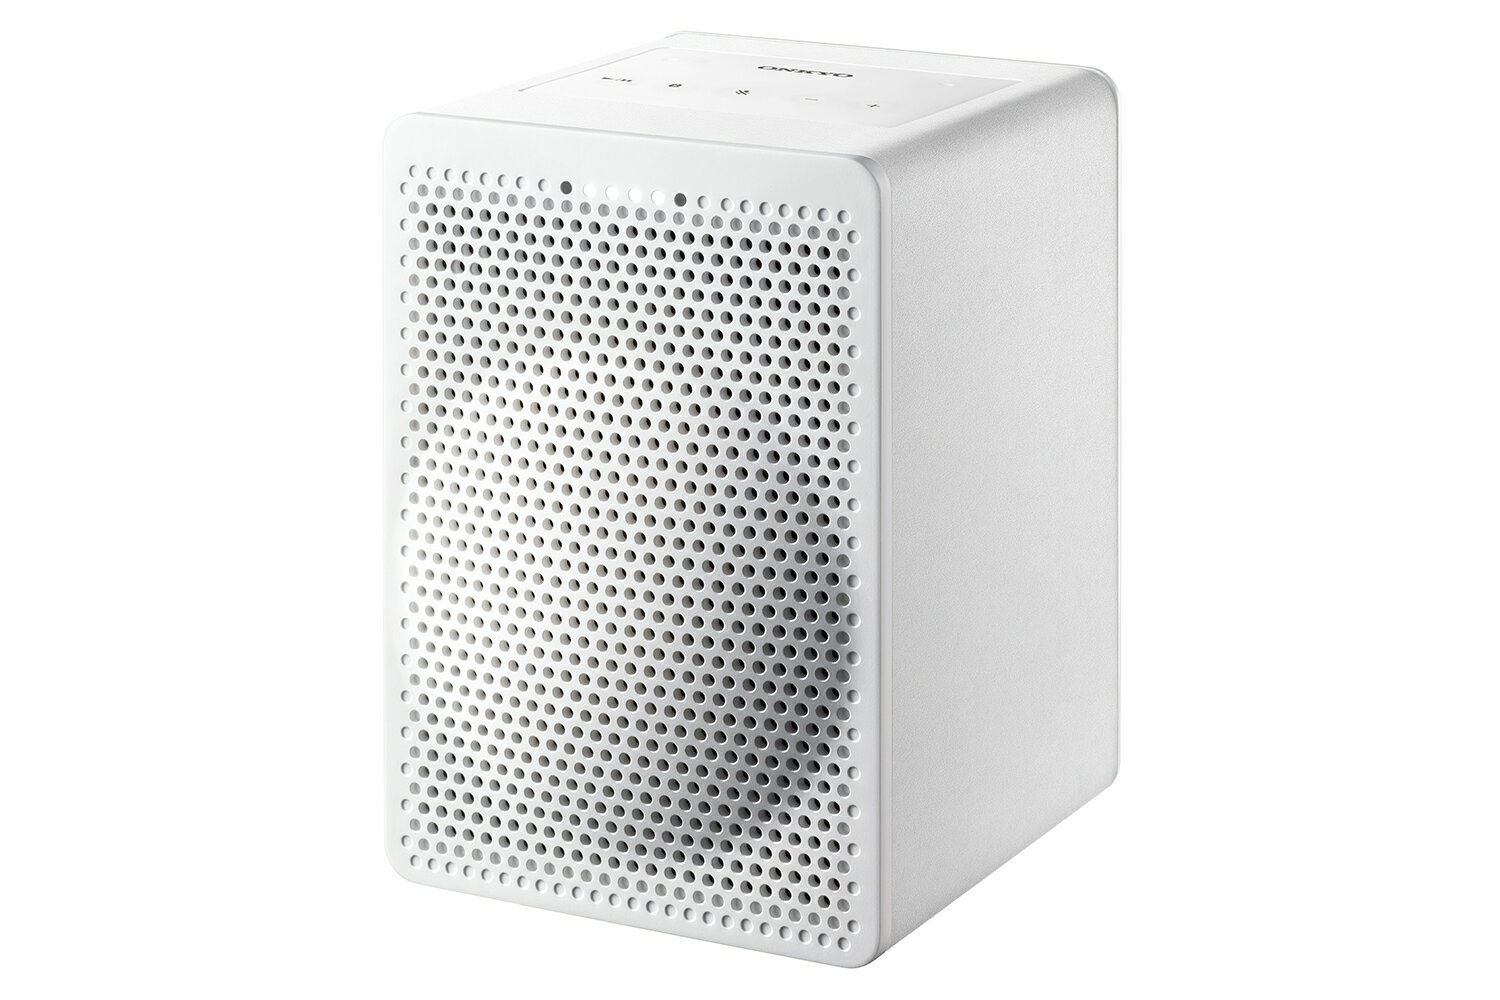 Onkyo Smart Speaker G3 with the Google Assistant Built In